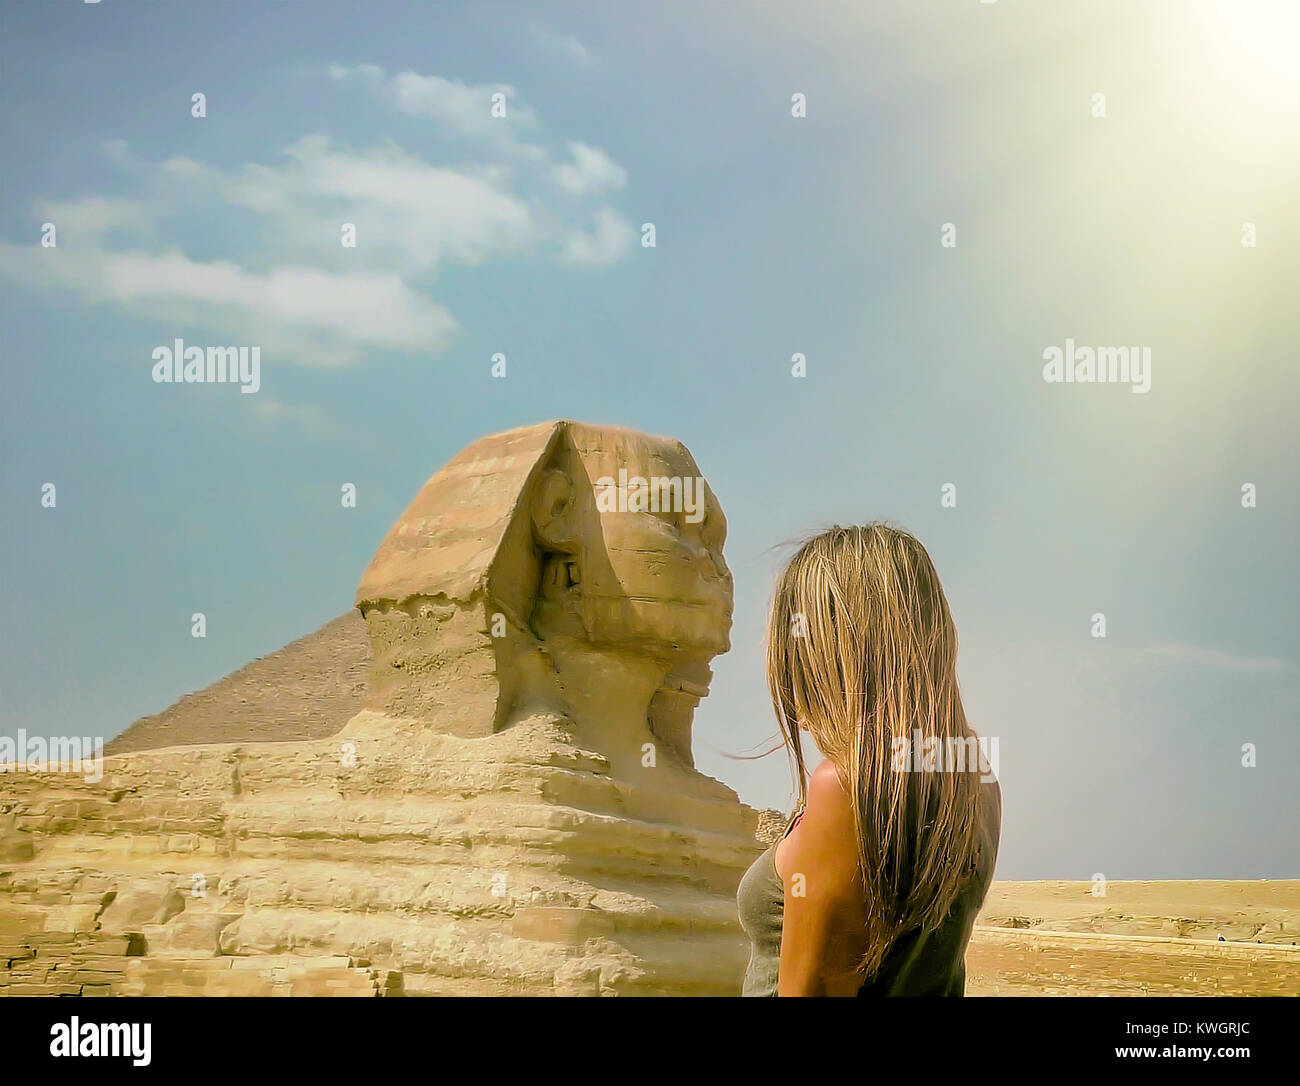 Woman standing in front of The Great Sphinx Of Giza in Cairo Egypt. Stock Photo. - Stock Image